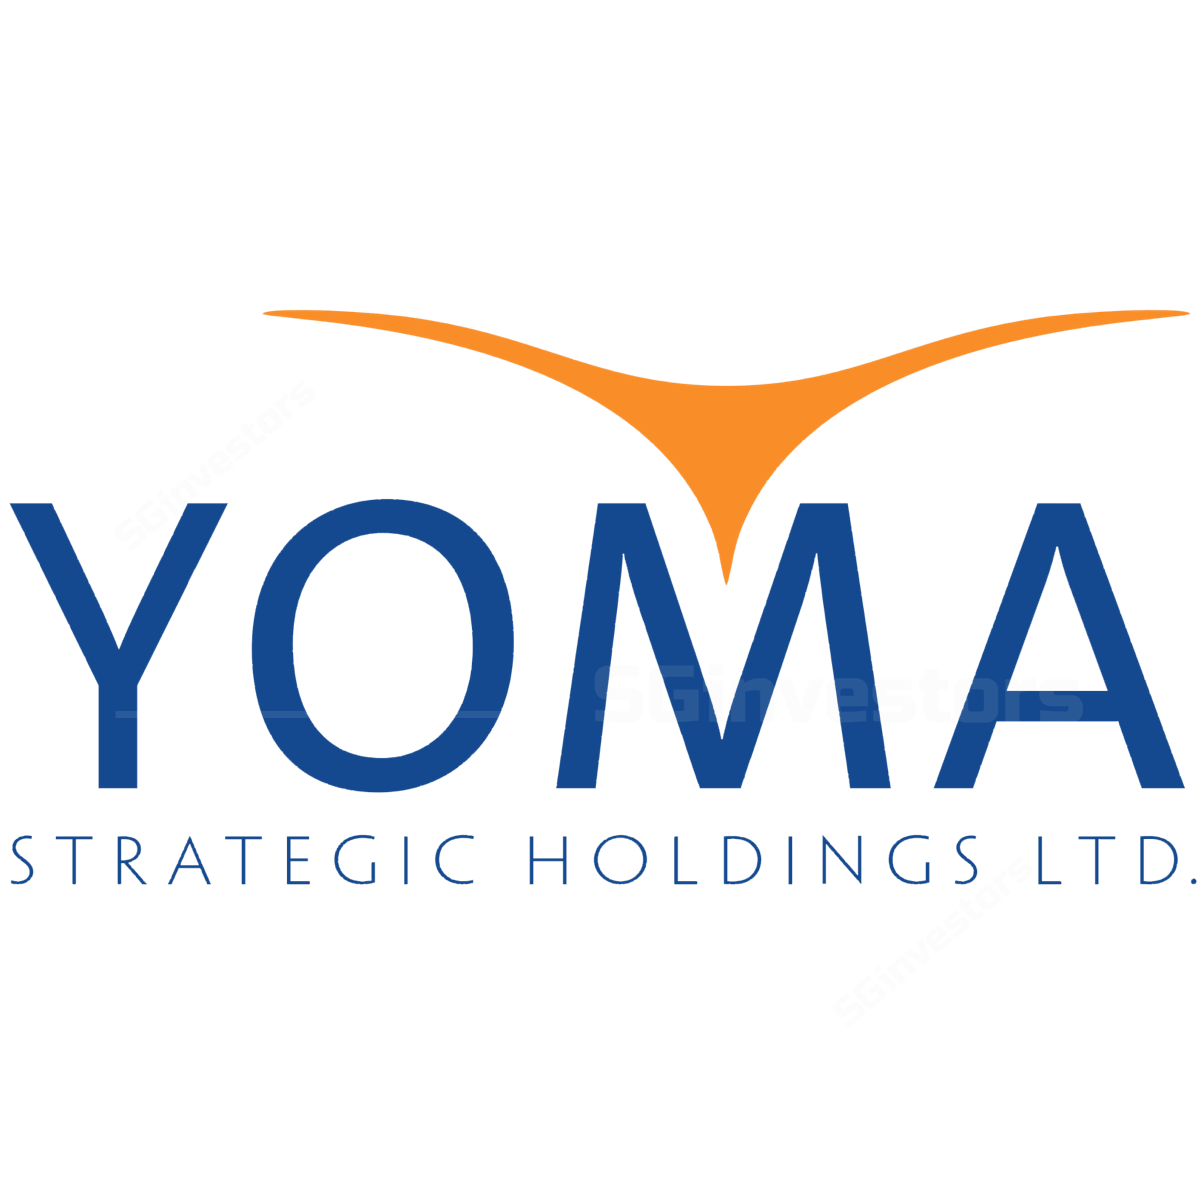 Yoma Strategic Holdings - OCBC Investment 2017-07-27: Cautious Optimism For The Road Ahead